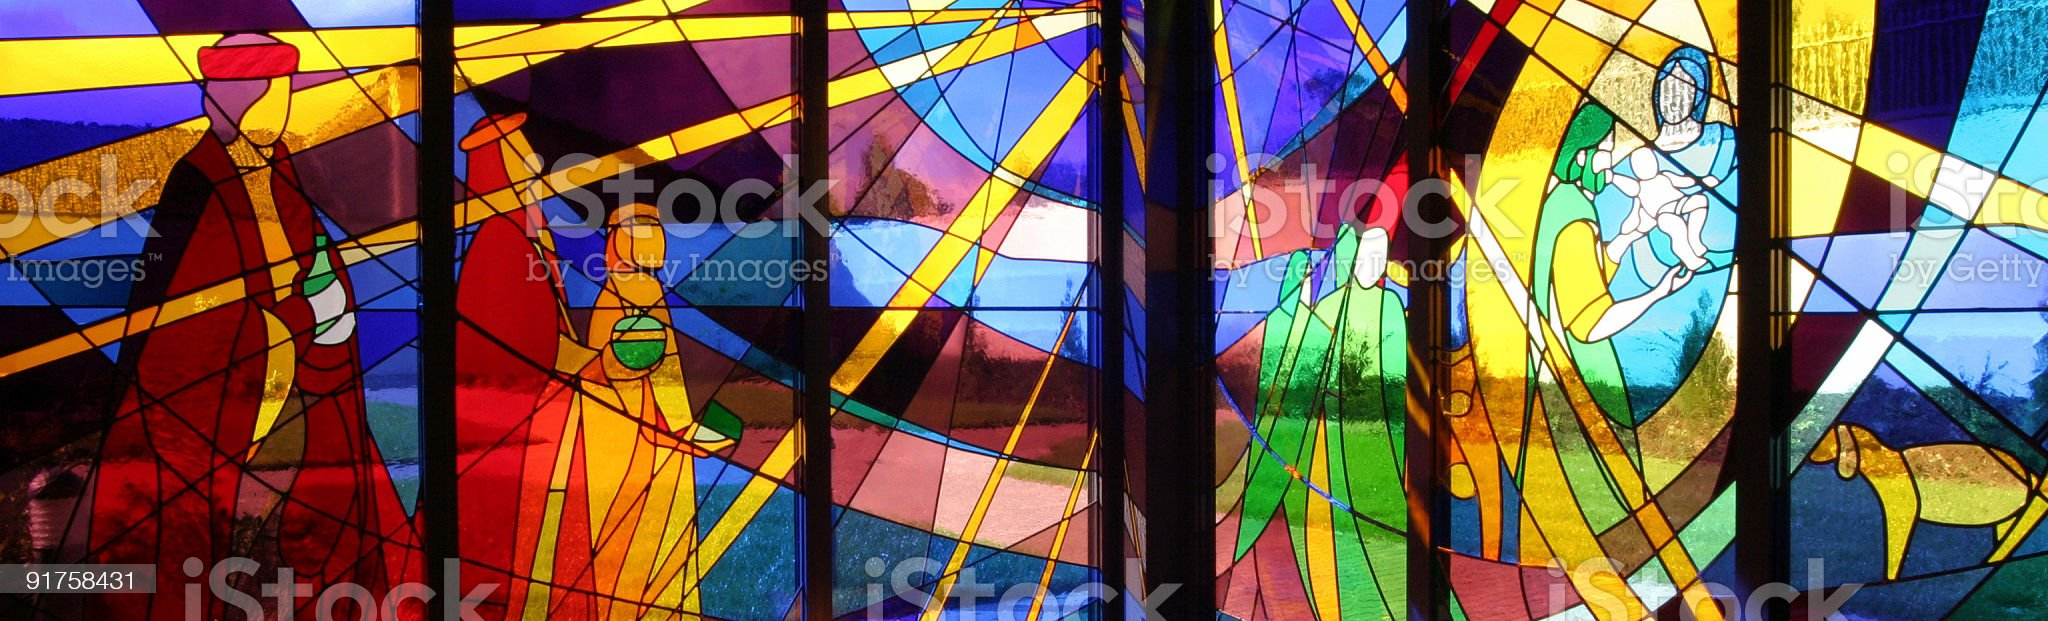 Stained Glass Window royalty-free stock photo